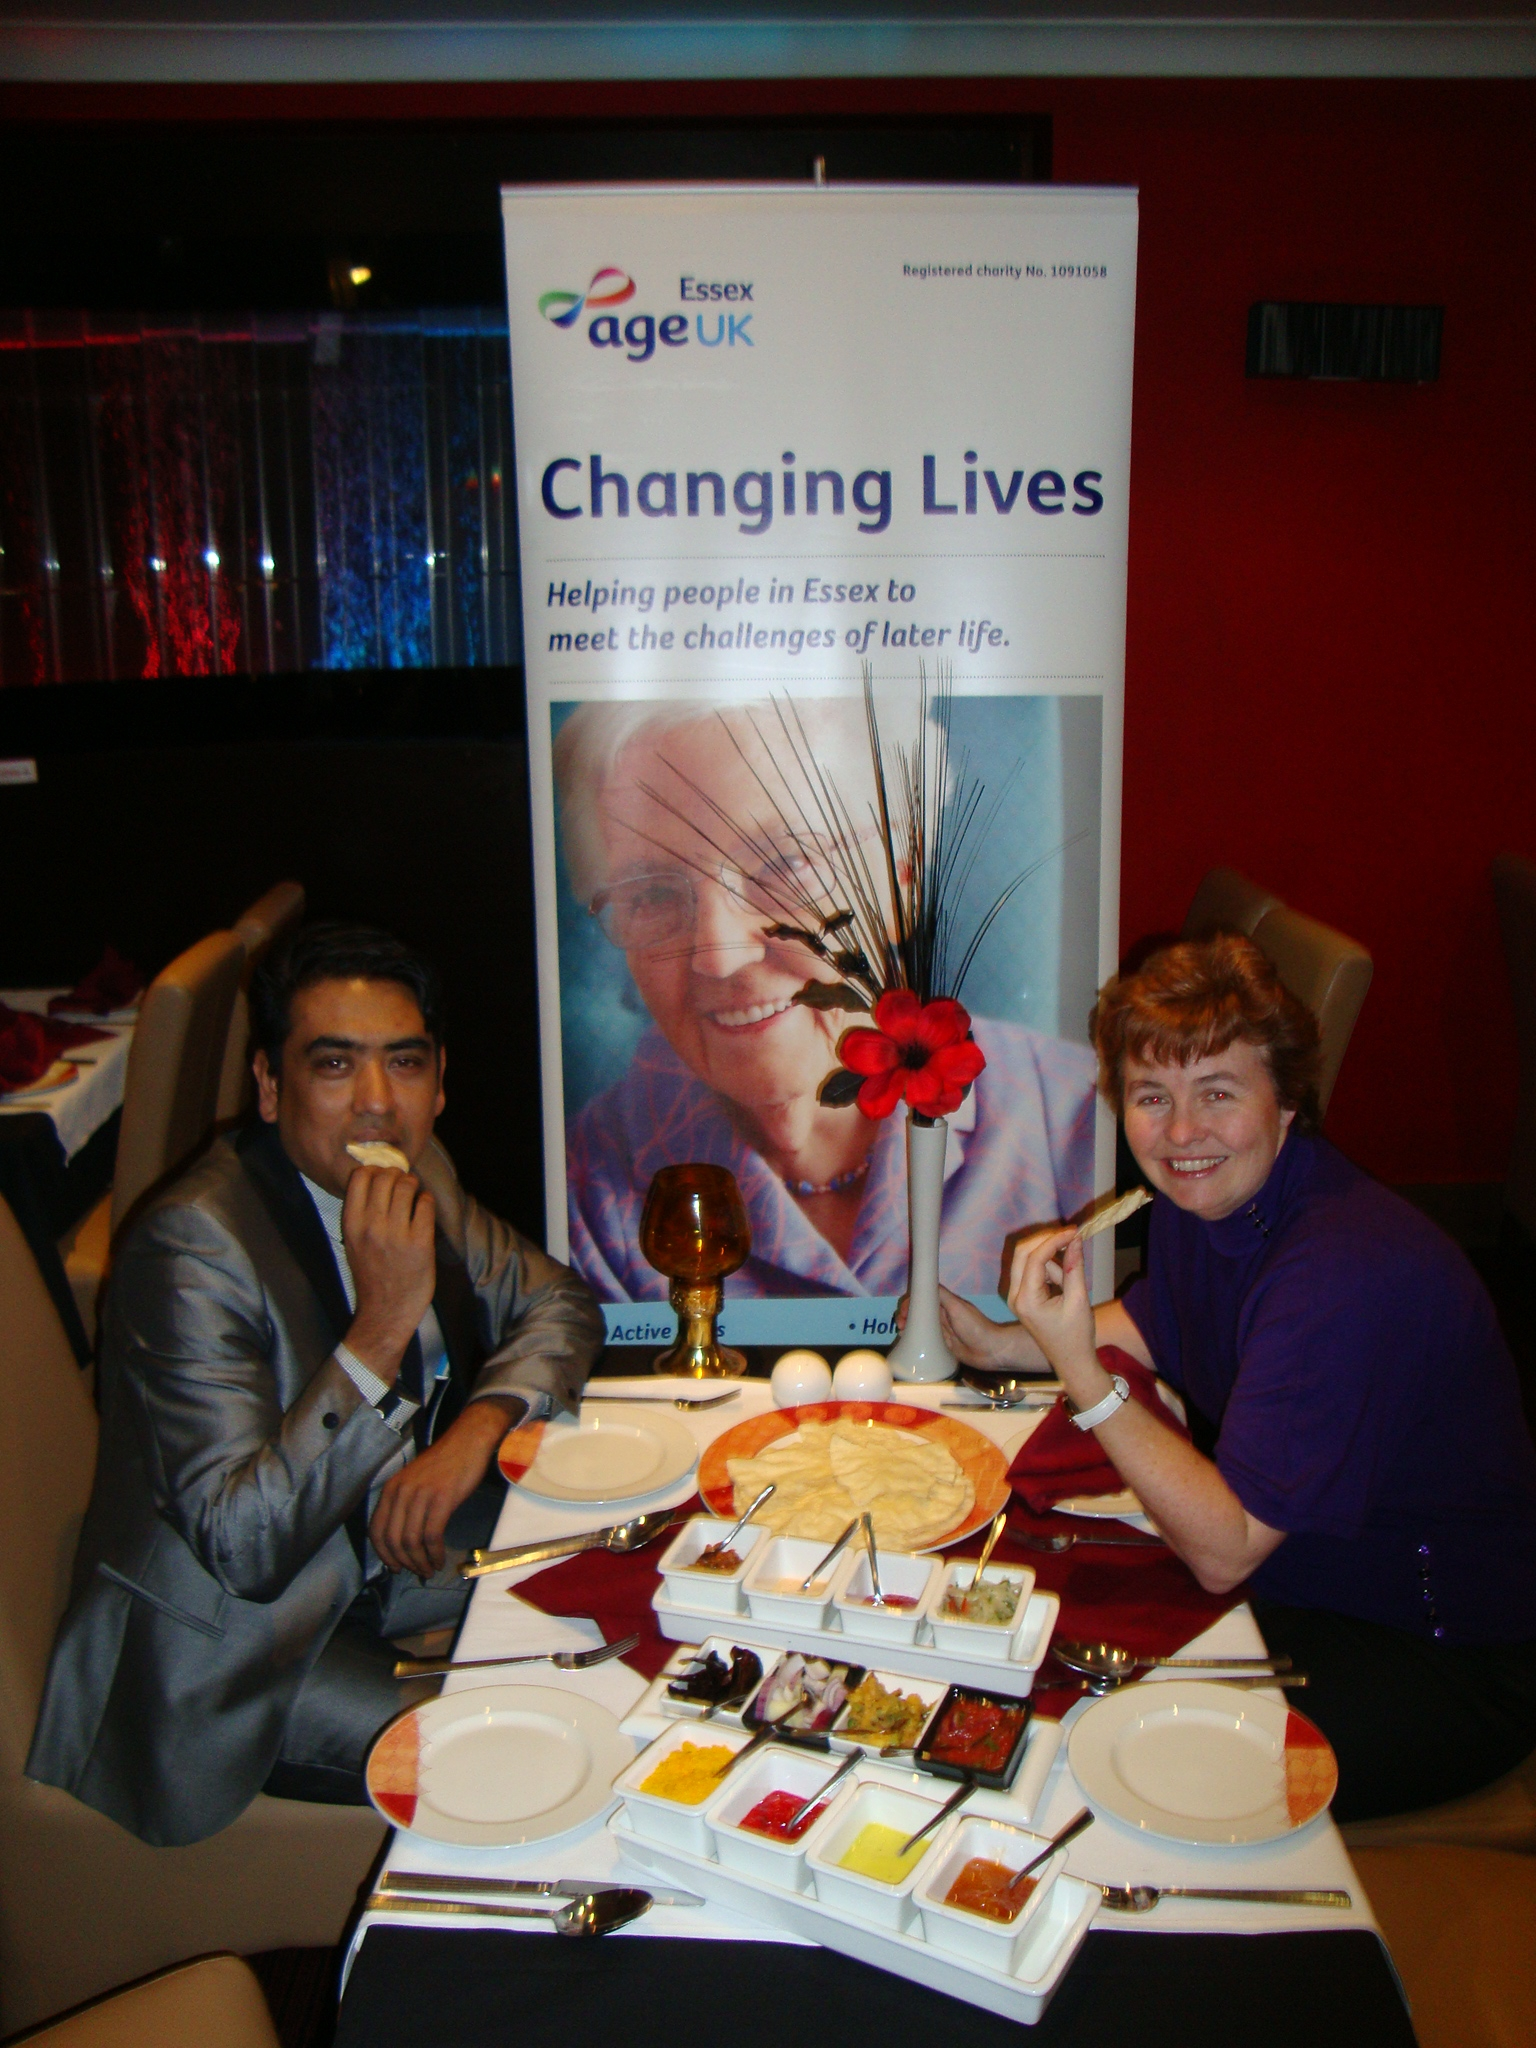 Indian restaurant organises charity